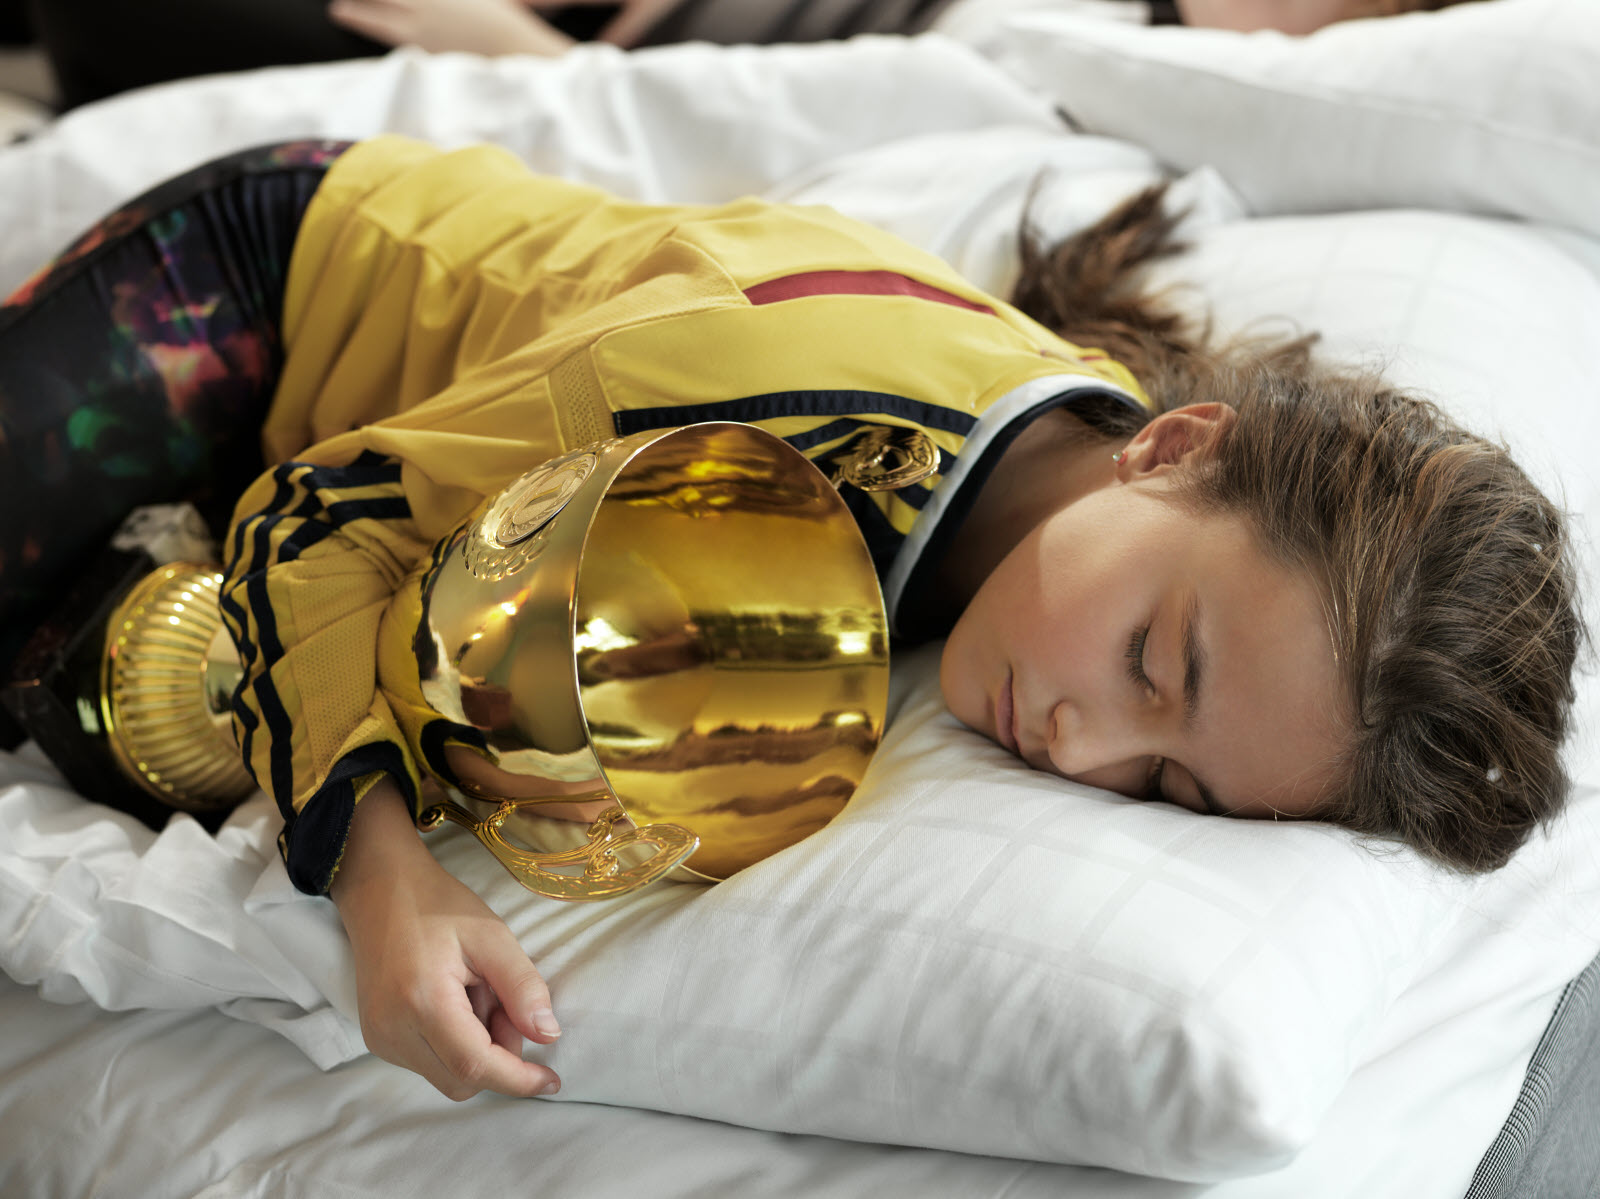 Sleeping girl with cup